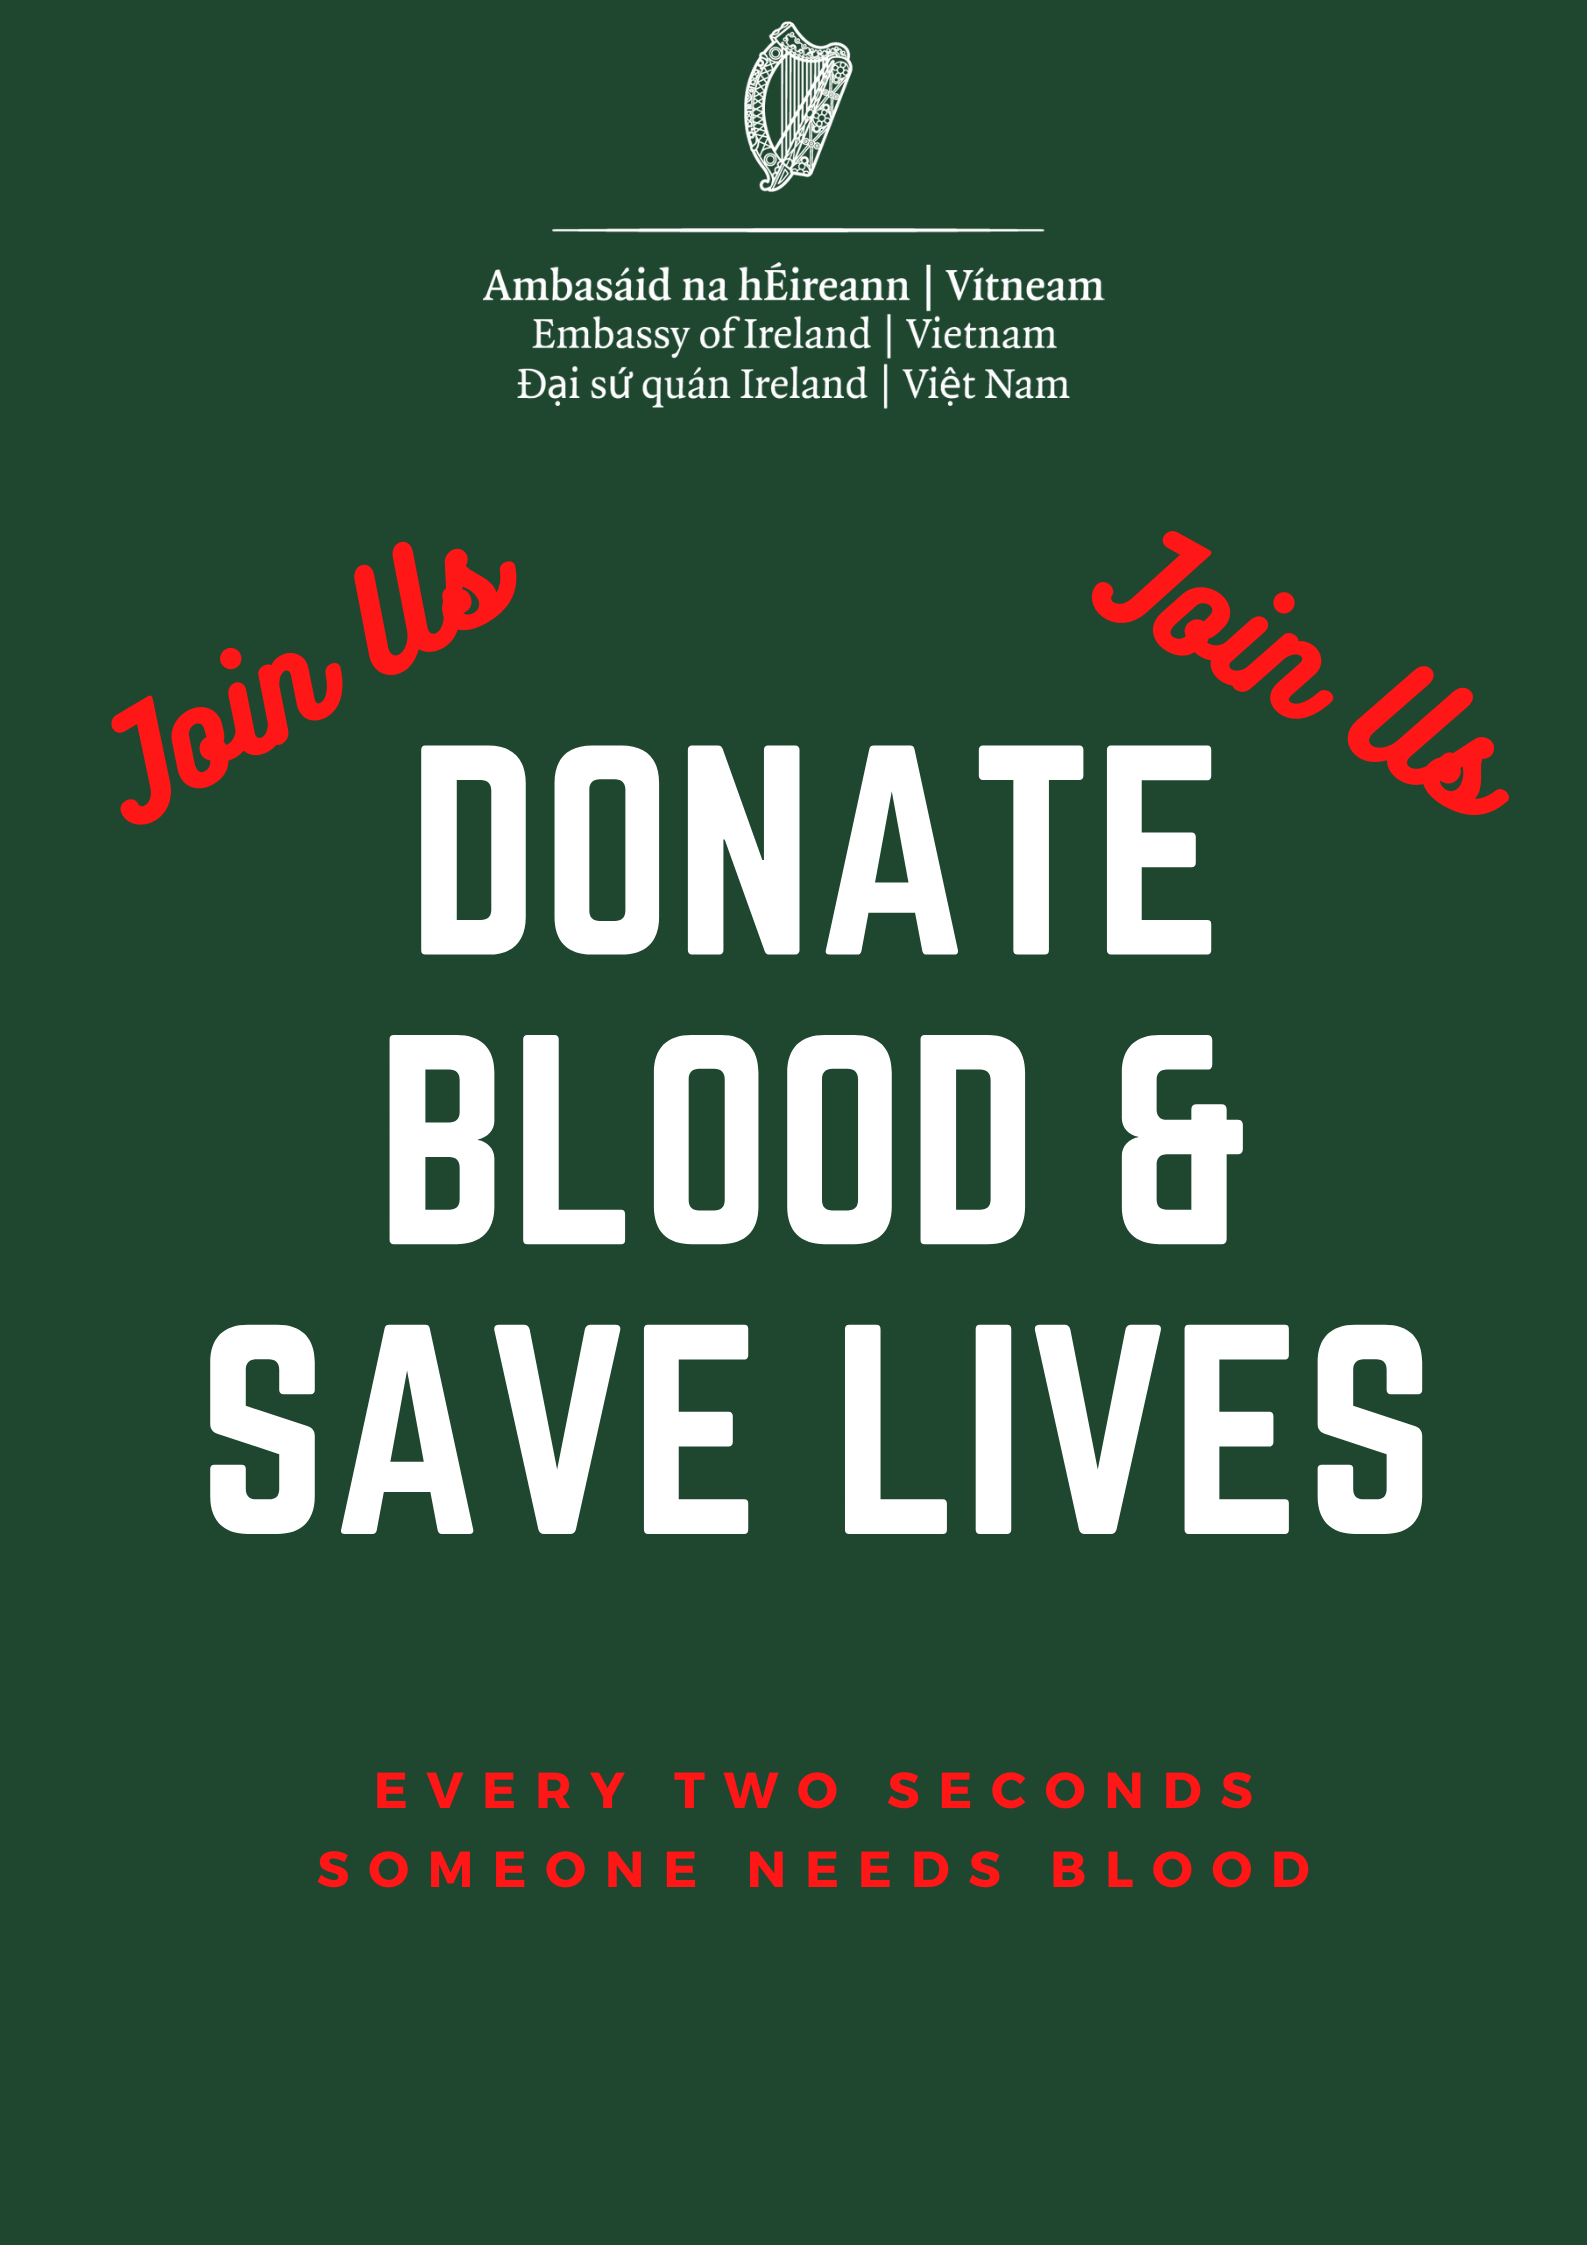 St. Patrick's Day Blood Donations